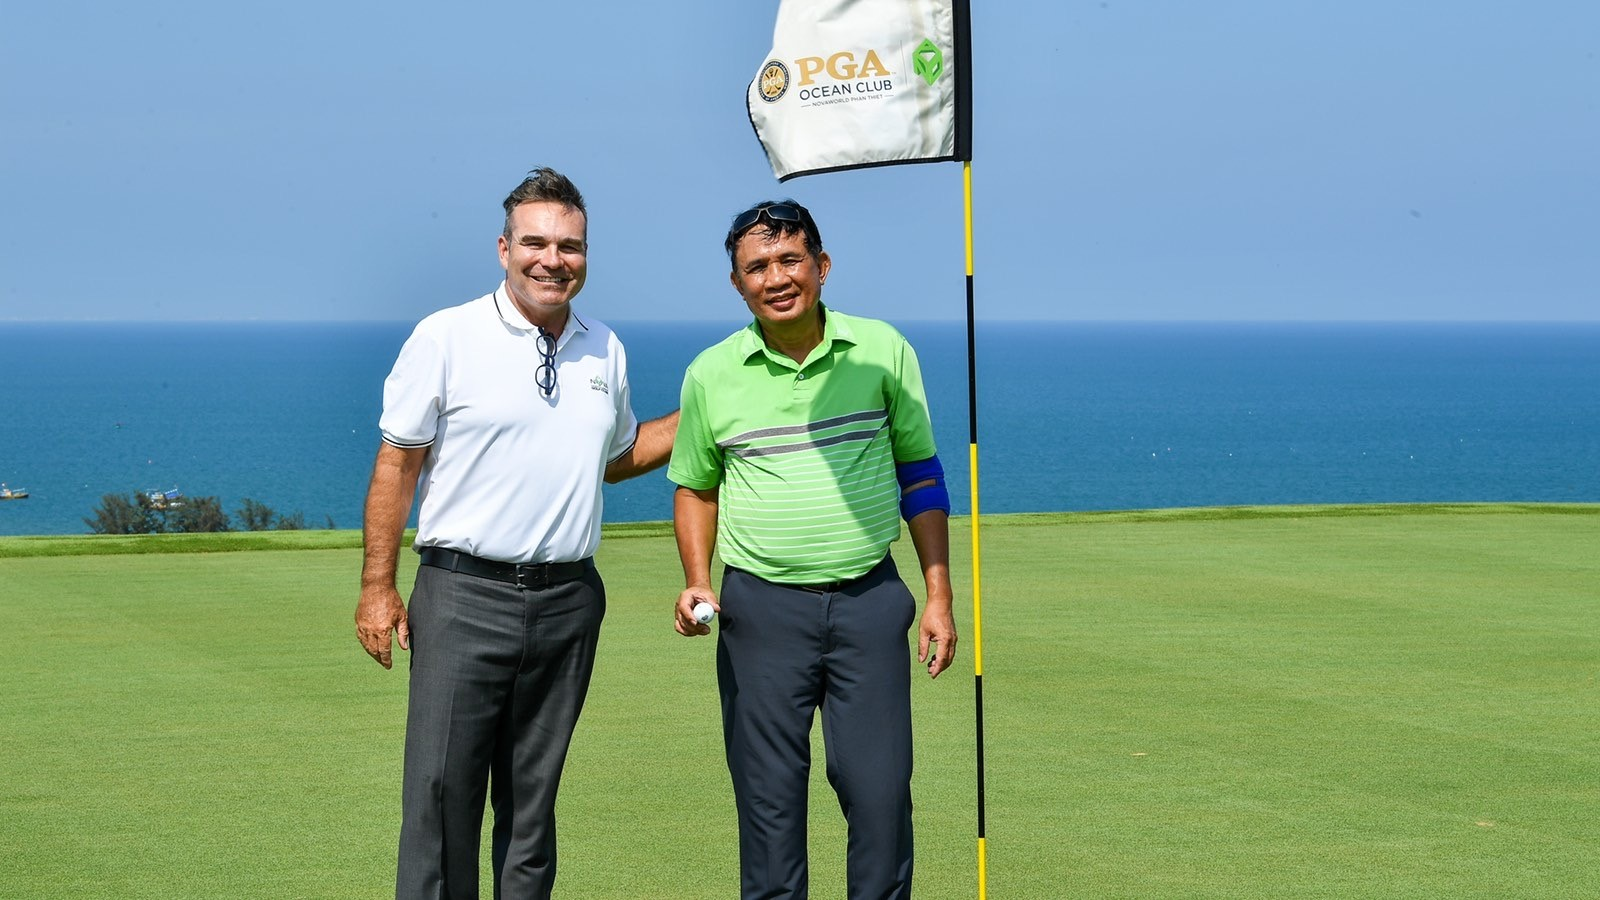 Golfer Nguyen Huu Thanh overcame a series of traps installed in hole 11 to score the first hole-in-one of the tournament.